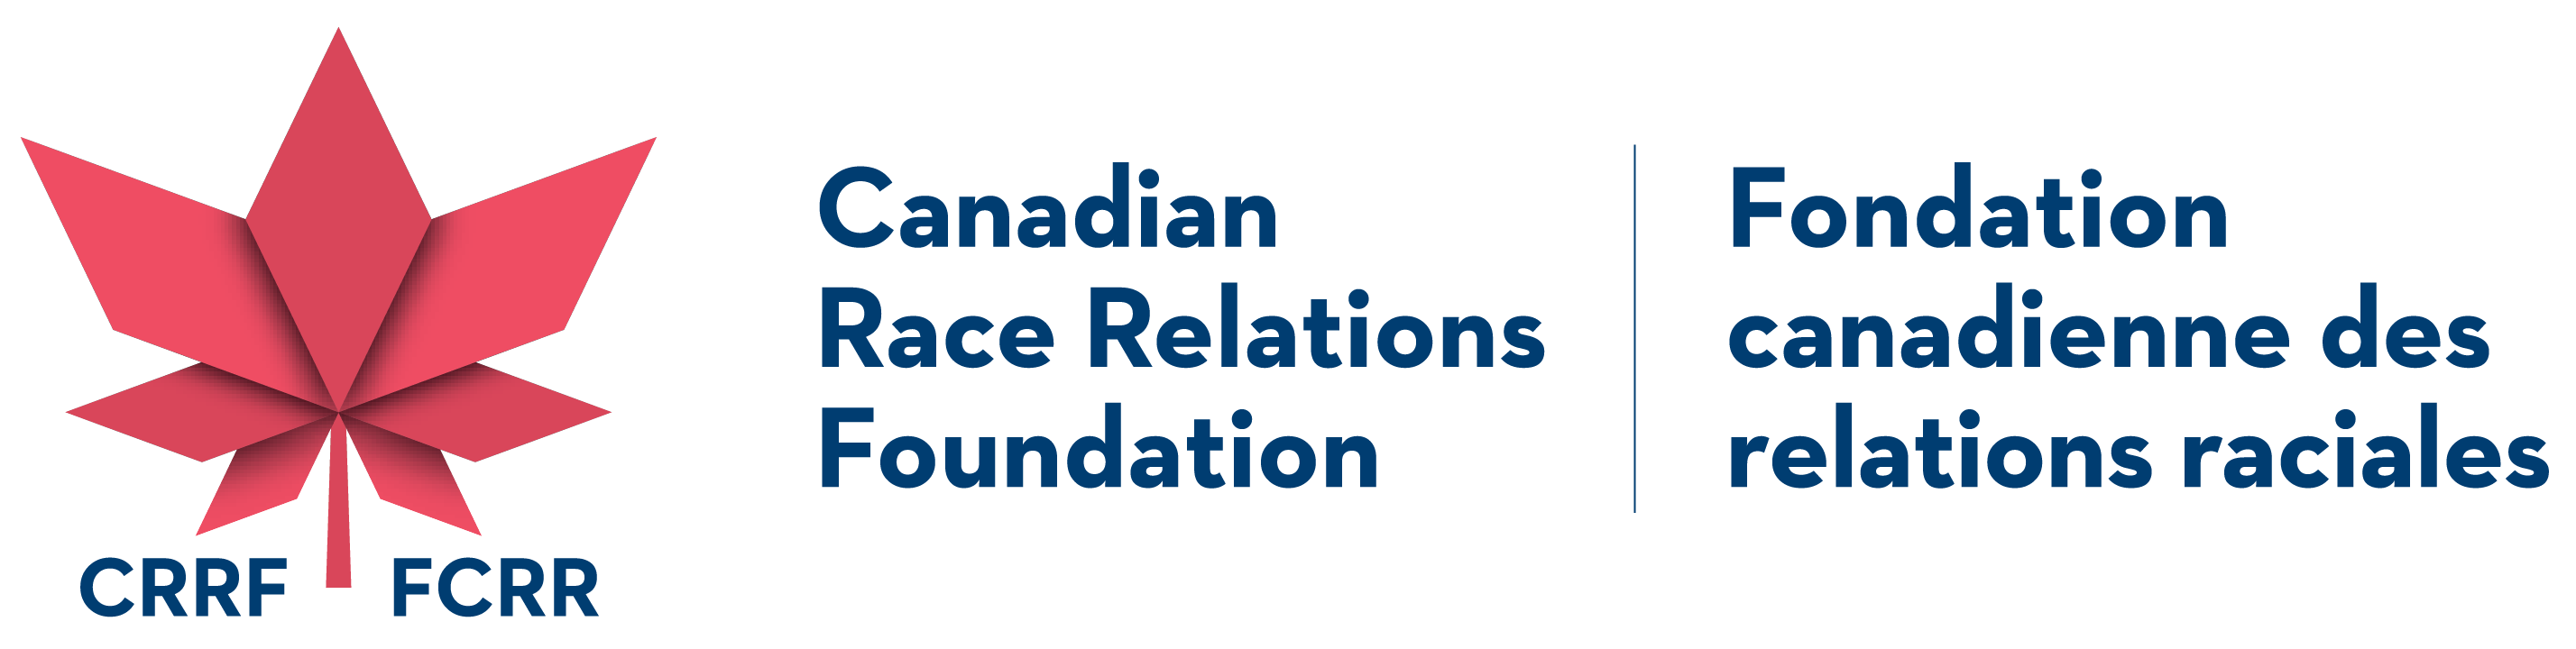 La Fondation canadienne des relations raciales condamne le racisme antichinois